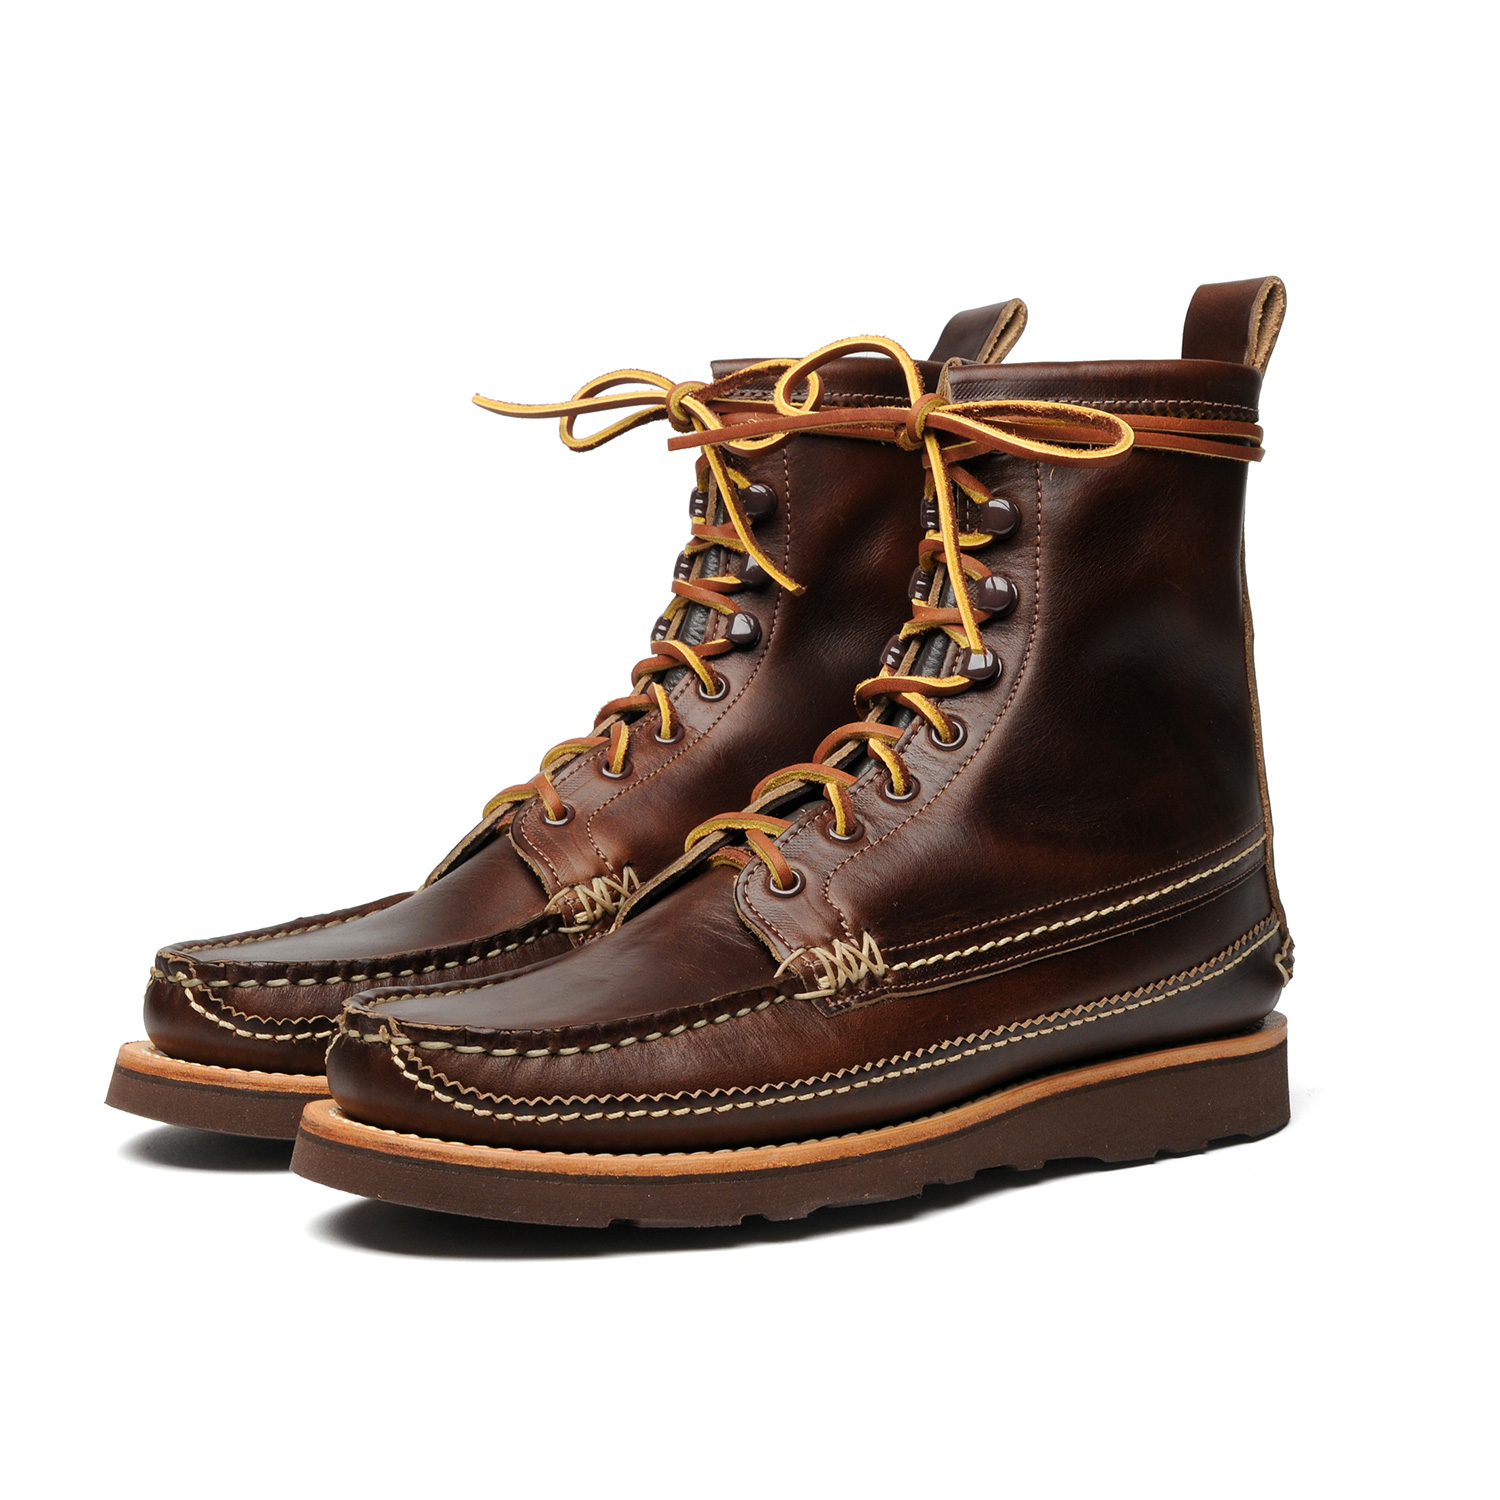 03405PM-SP-MAINE-GUIDE-DB-BOOTS-G-BROWN.jpg